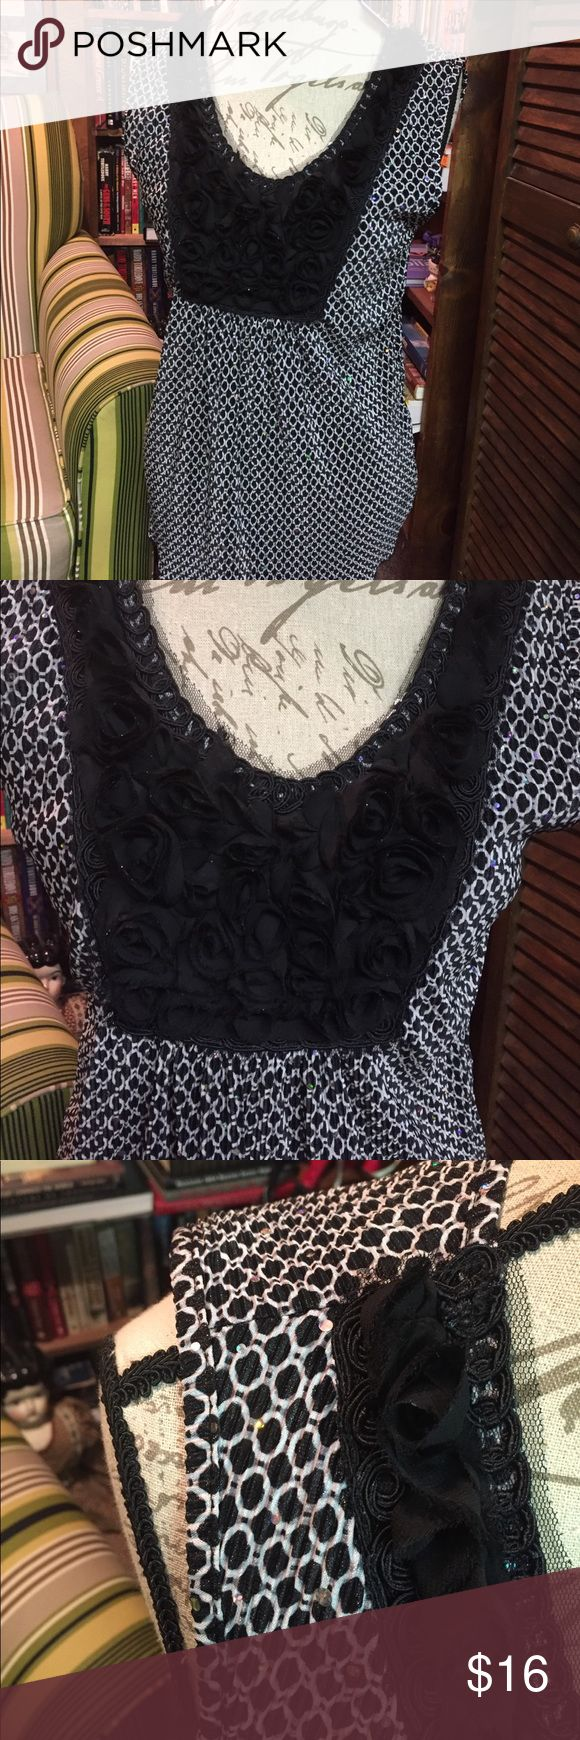 Dressbarn black and white tank w/ silver sequins S Size S tank NWT black and white with silver sequins. Dress Barn Tops